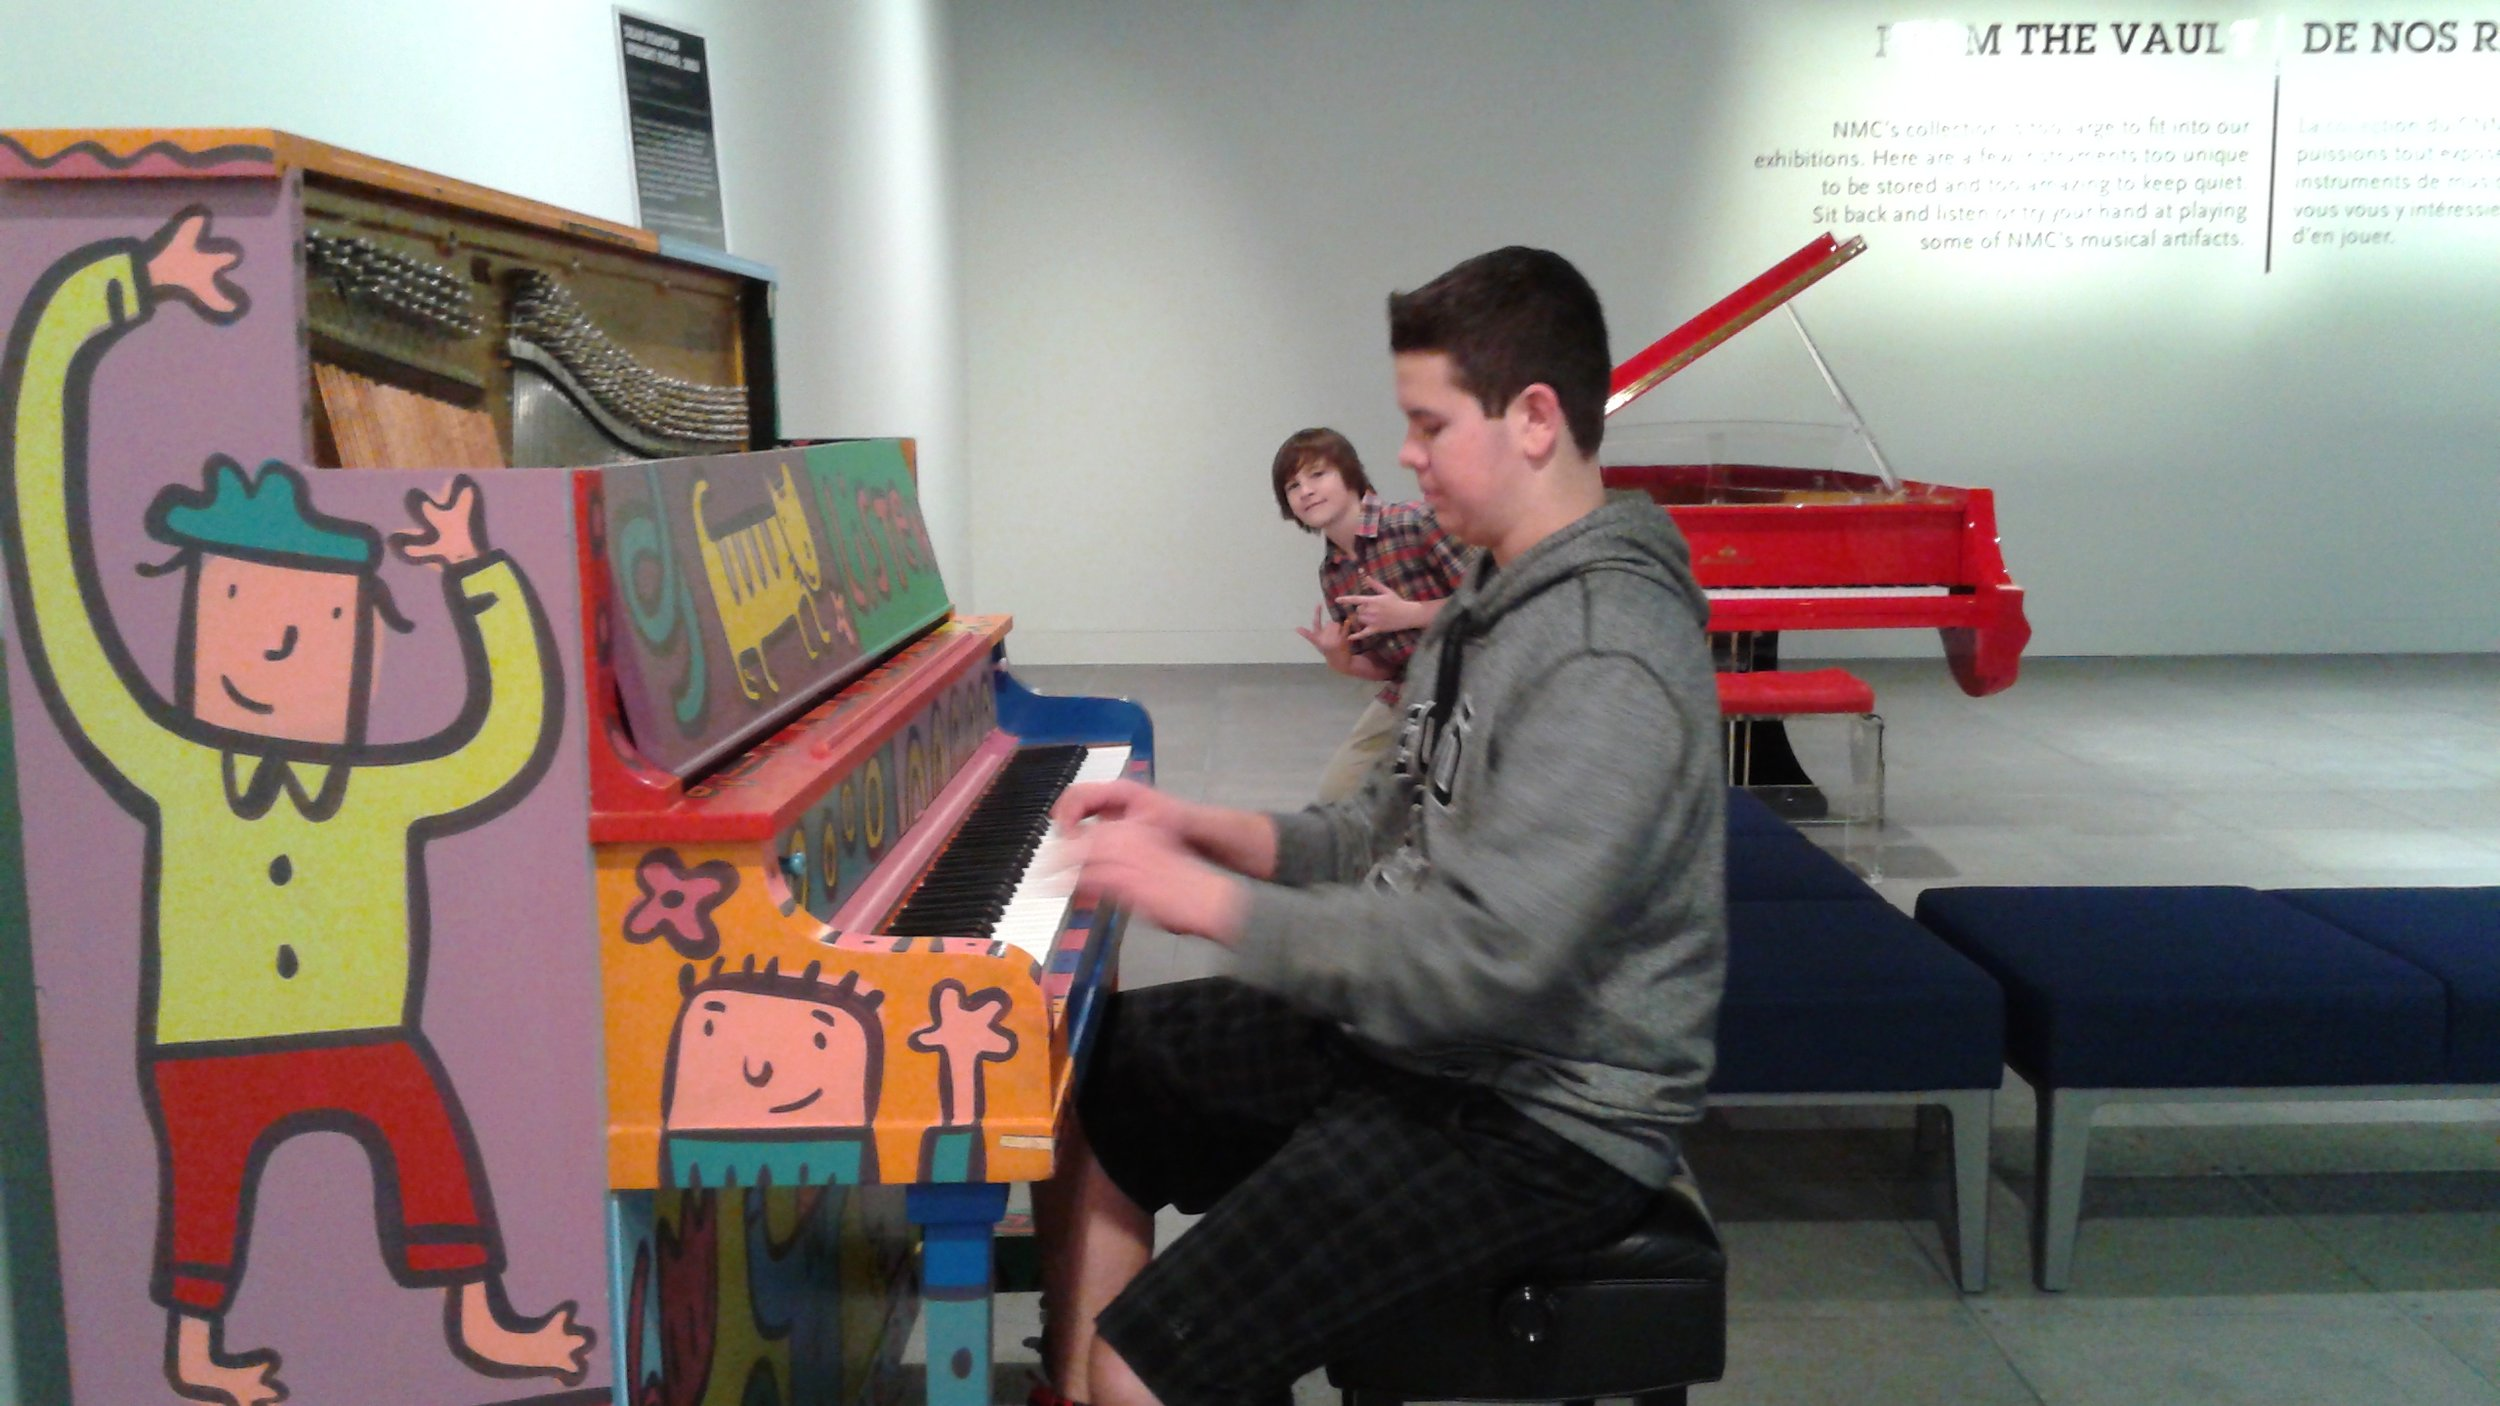 Jamming at the National Music Centre